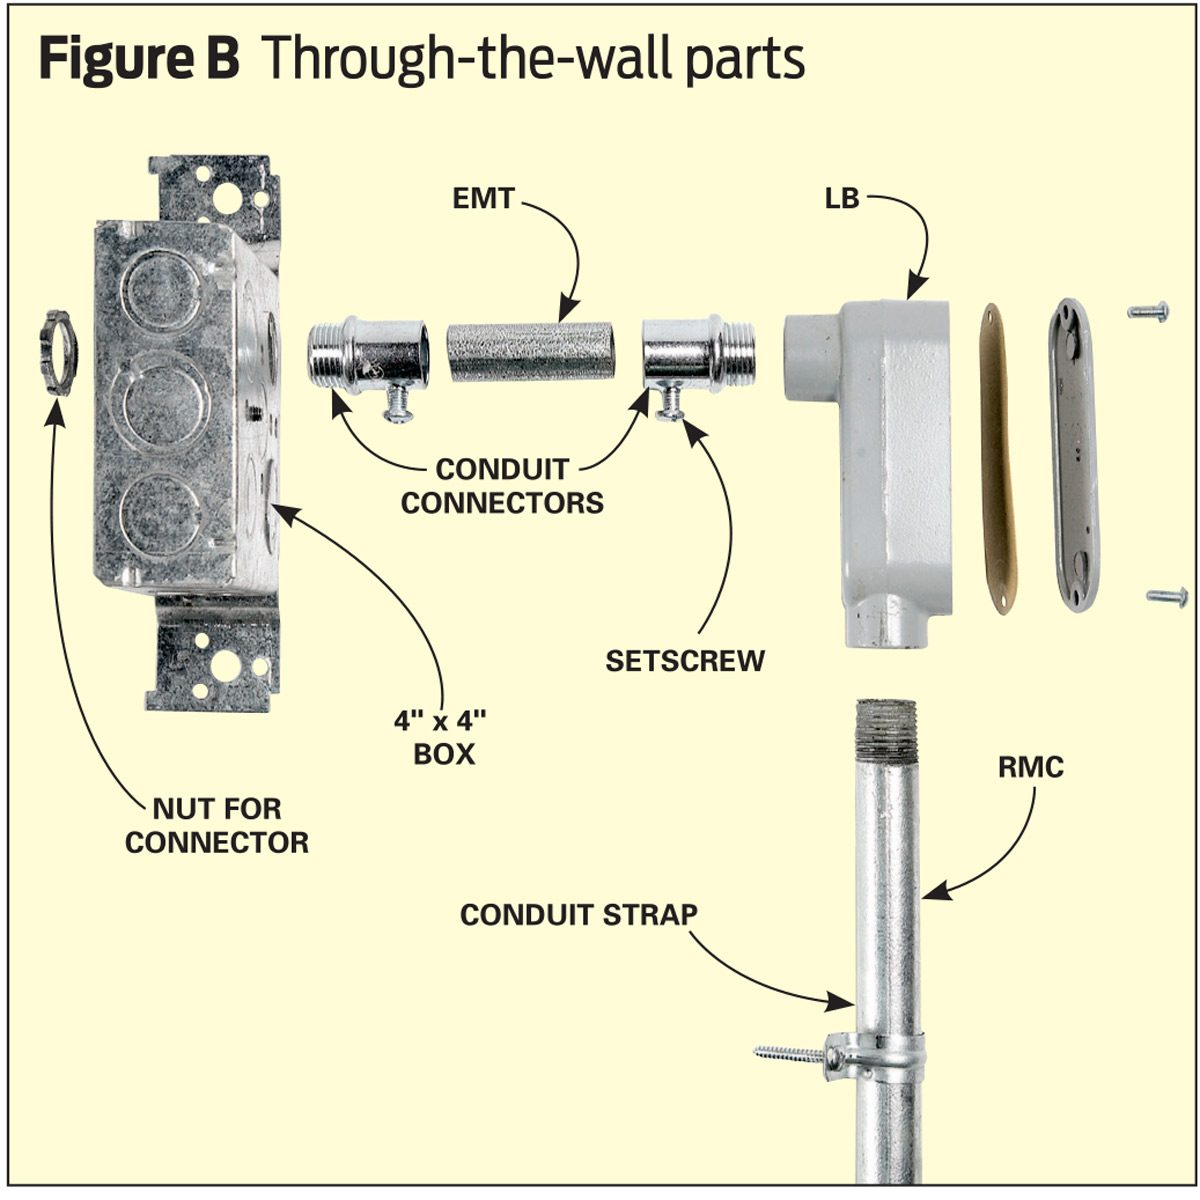 Figure B: Through-the-Wall Parts